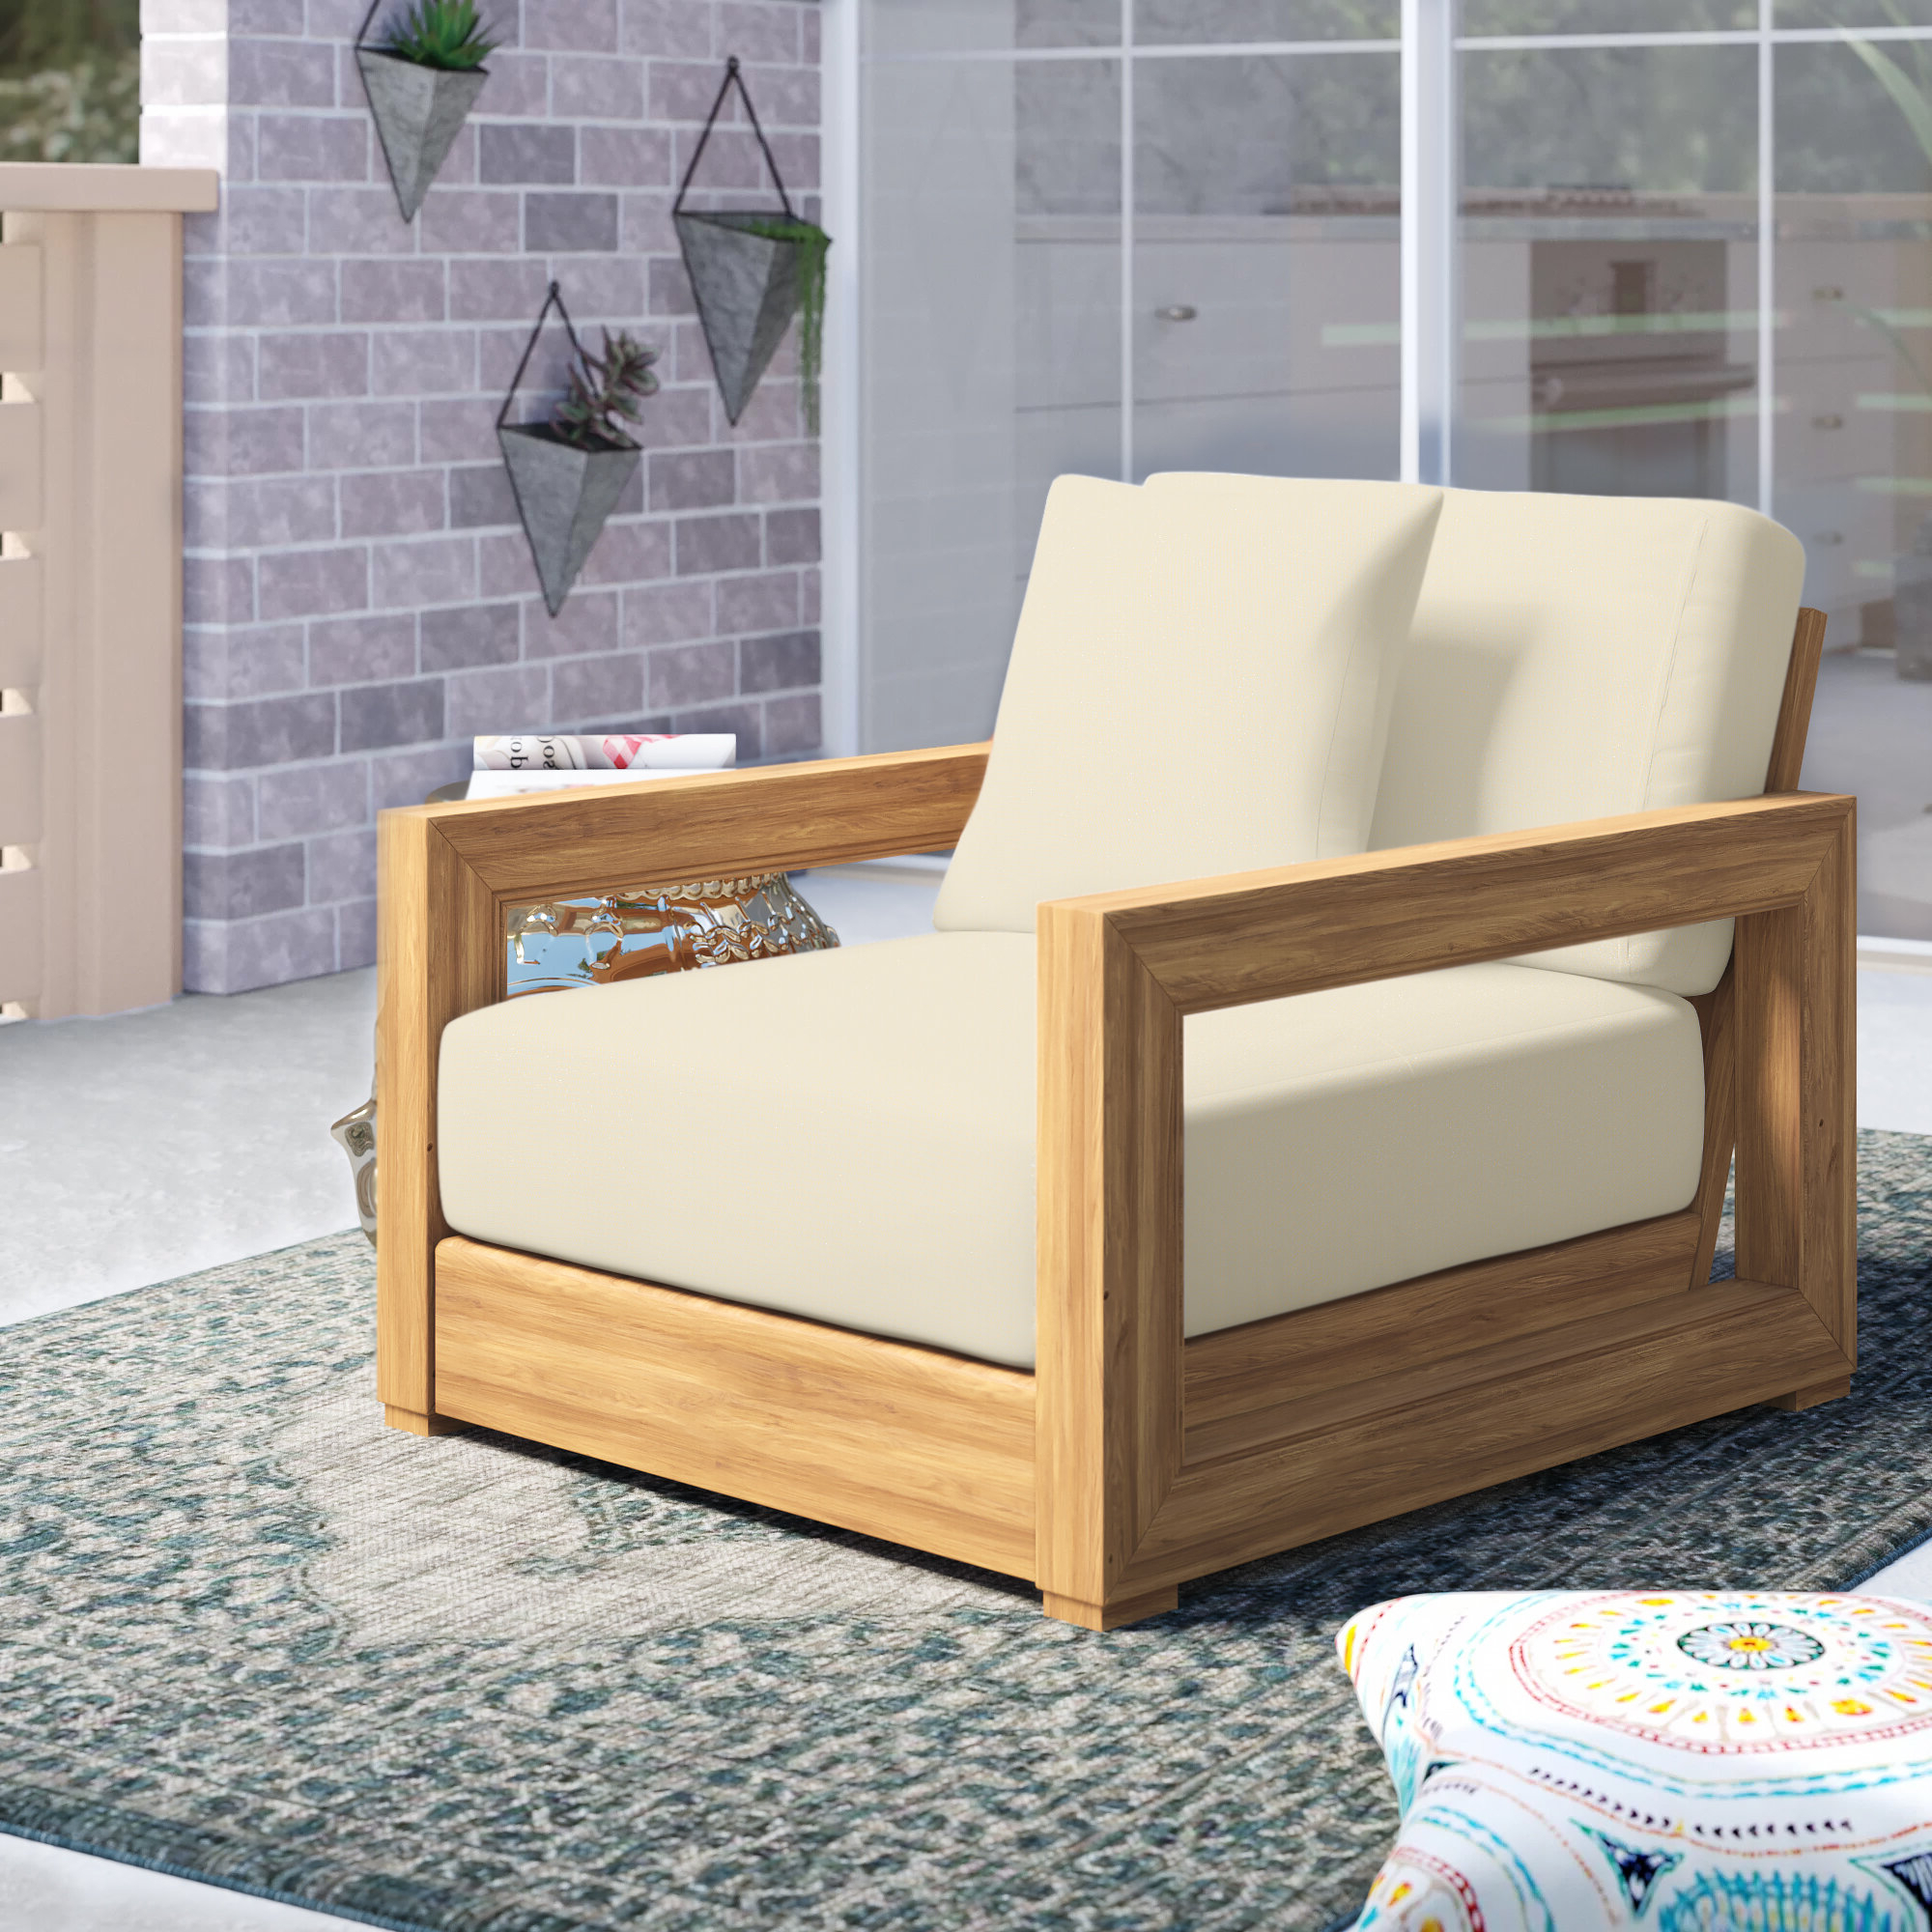 Ellanti Teak Patio Daybeds With Cushions For Well Known Union Rustic Ellanti Teak Patio Daybed With Cushions (View 4 of 20)